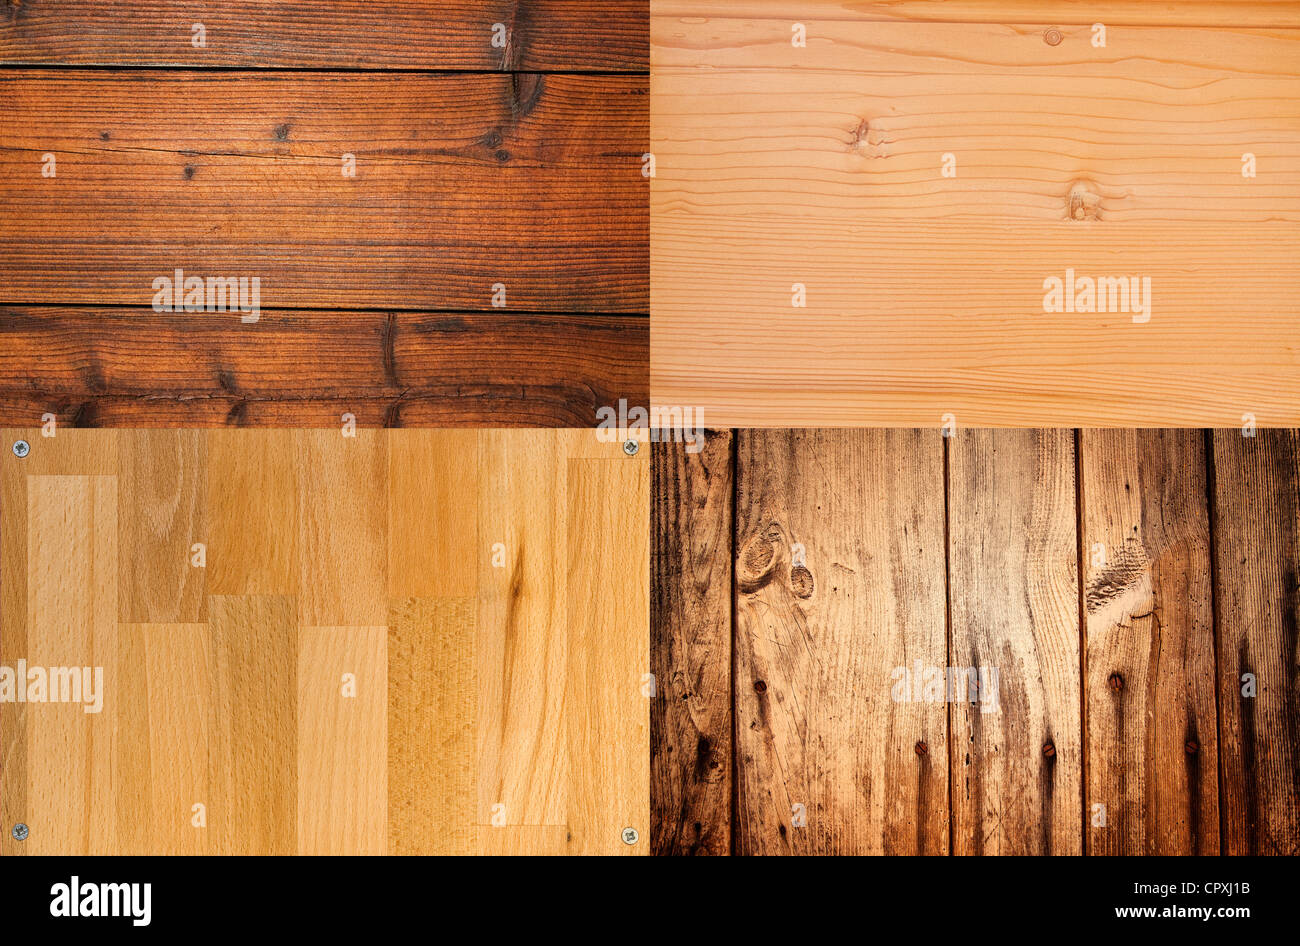 seamless brown wood texture stockfotos seamless brown. Black Bedroom Furniture Sets. Home Design Ideas